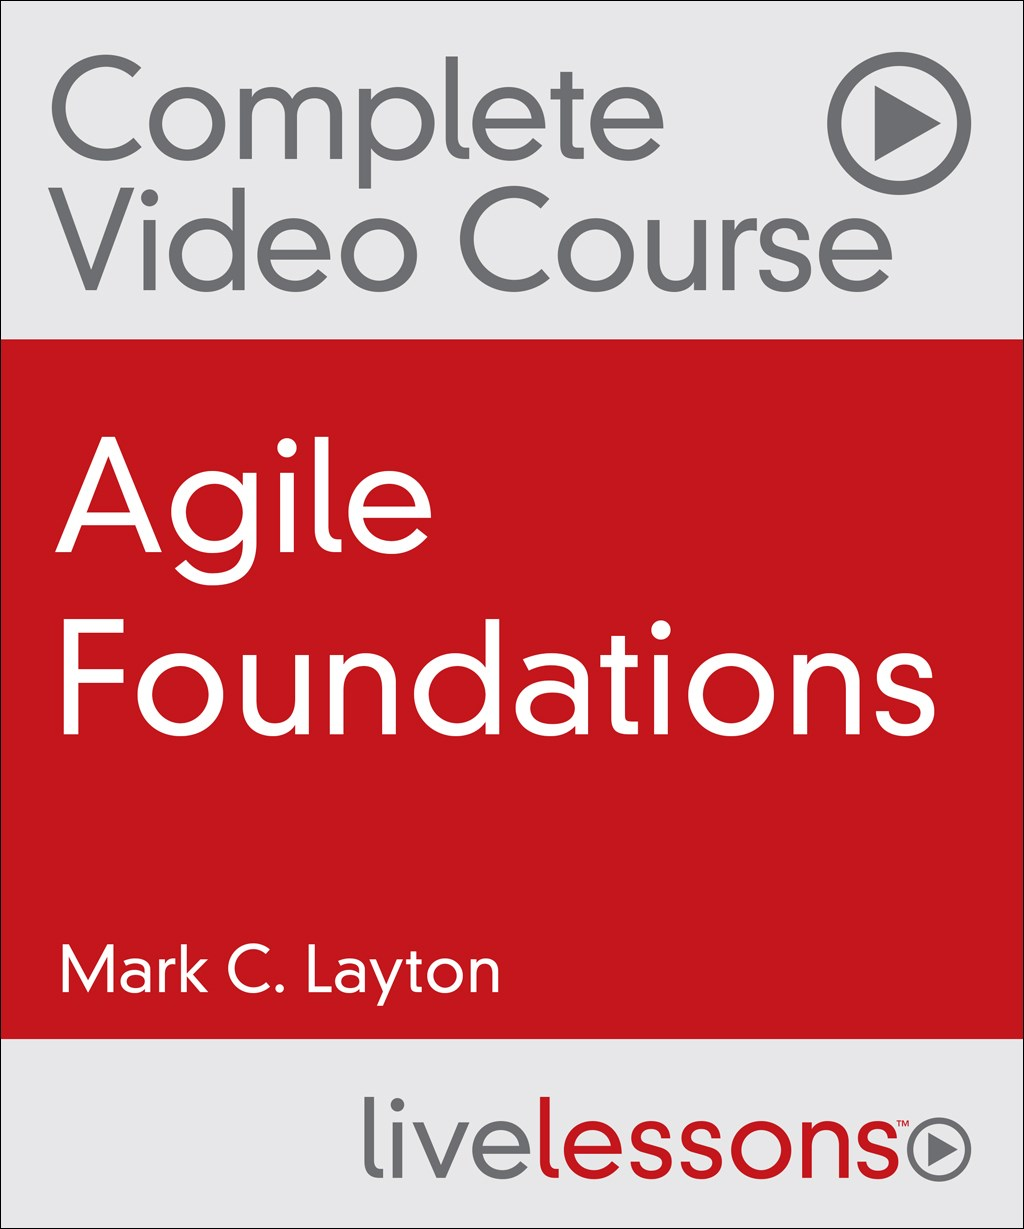 Agile Foundations Complete Video Course